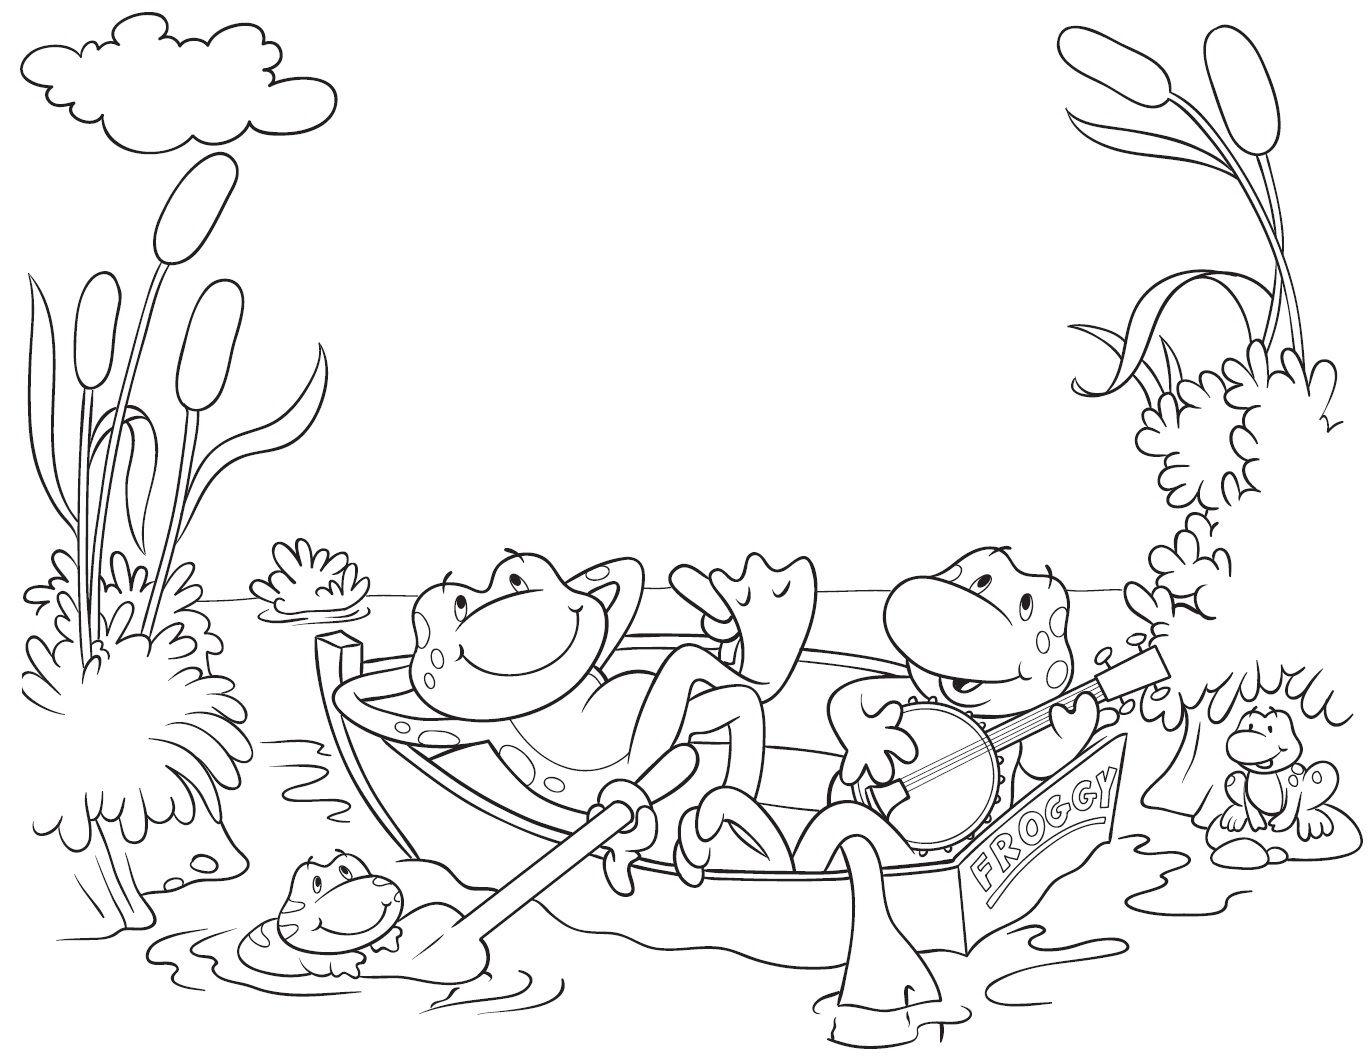 Frog Coloring Pages Frogs And Coloring Pages To Print On